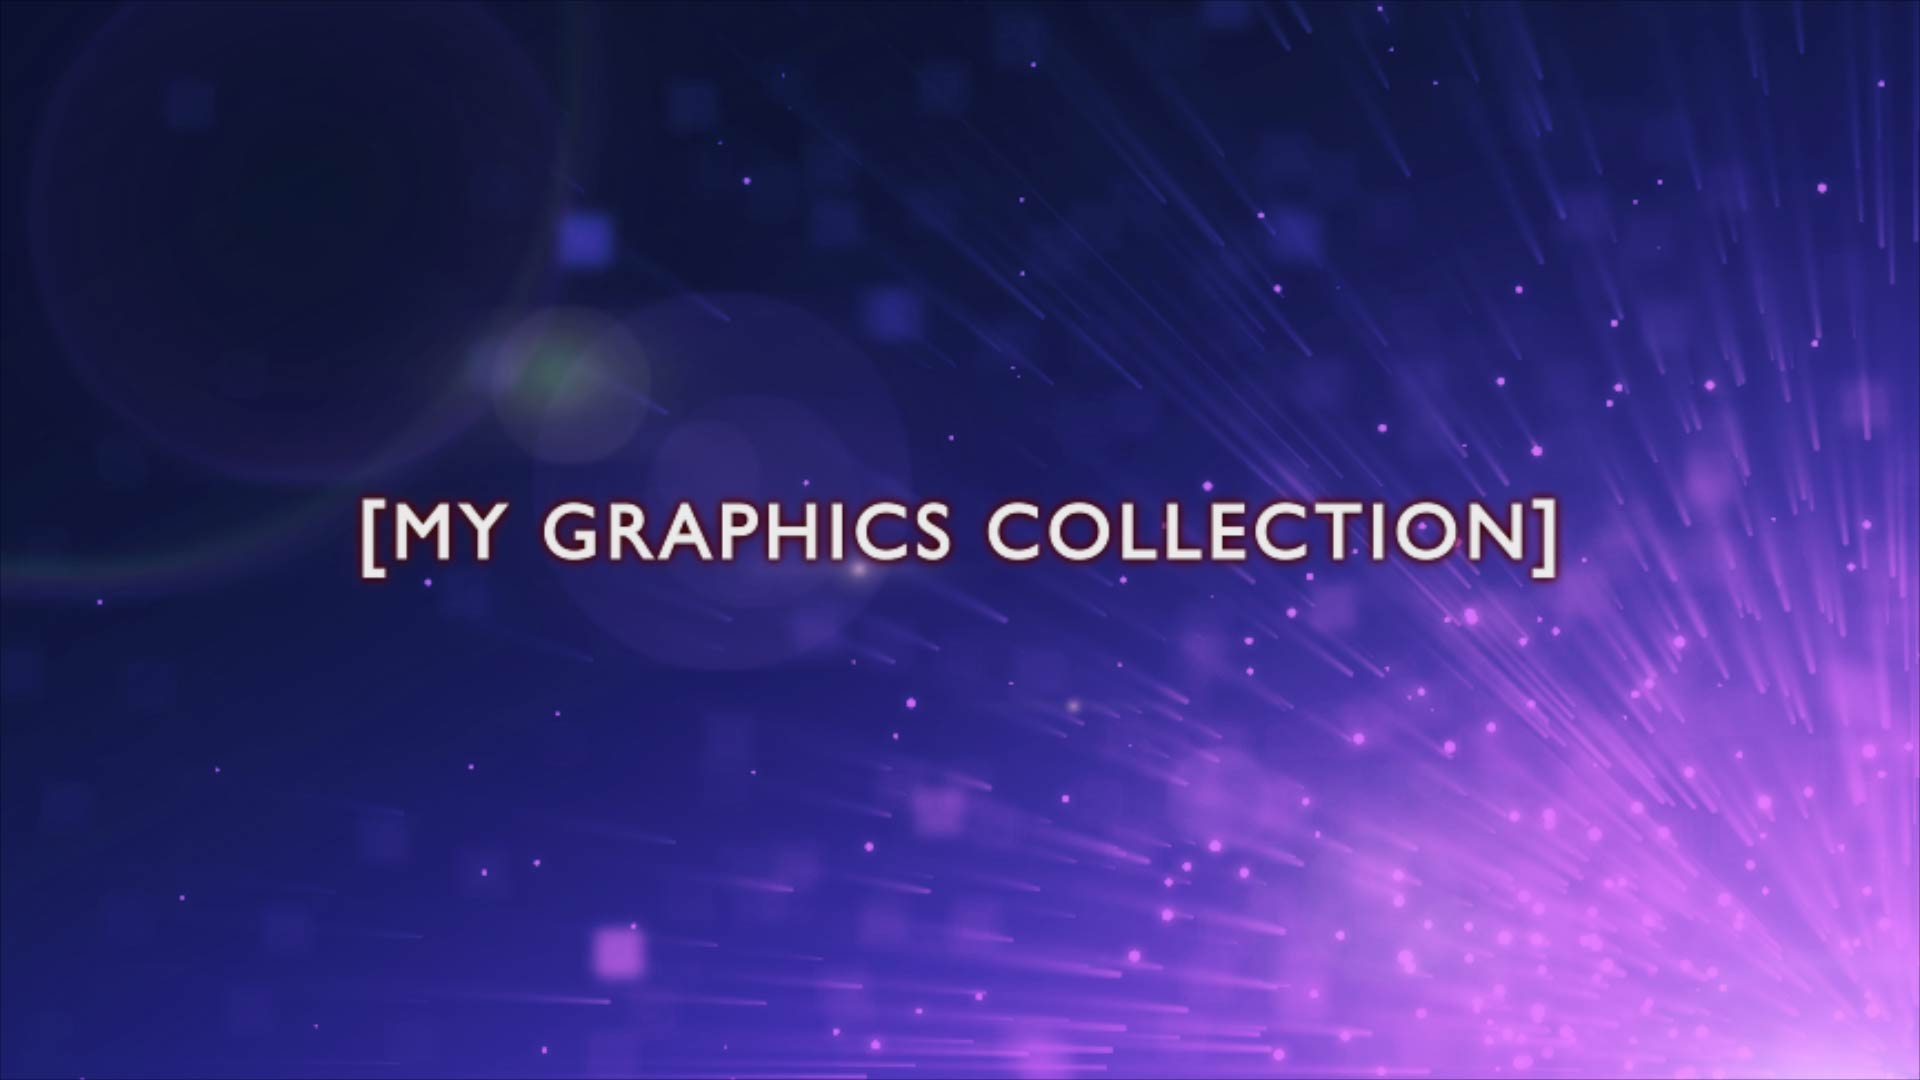 My Graphics Collection